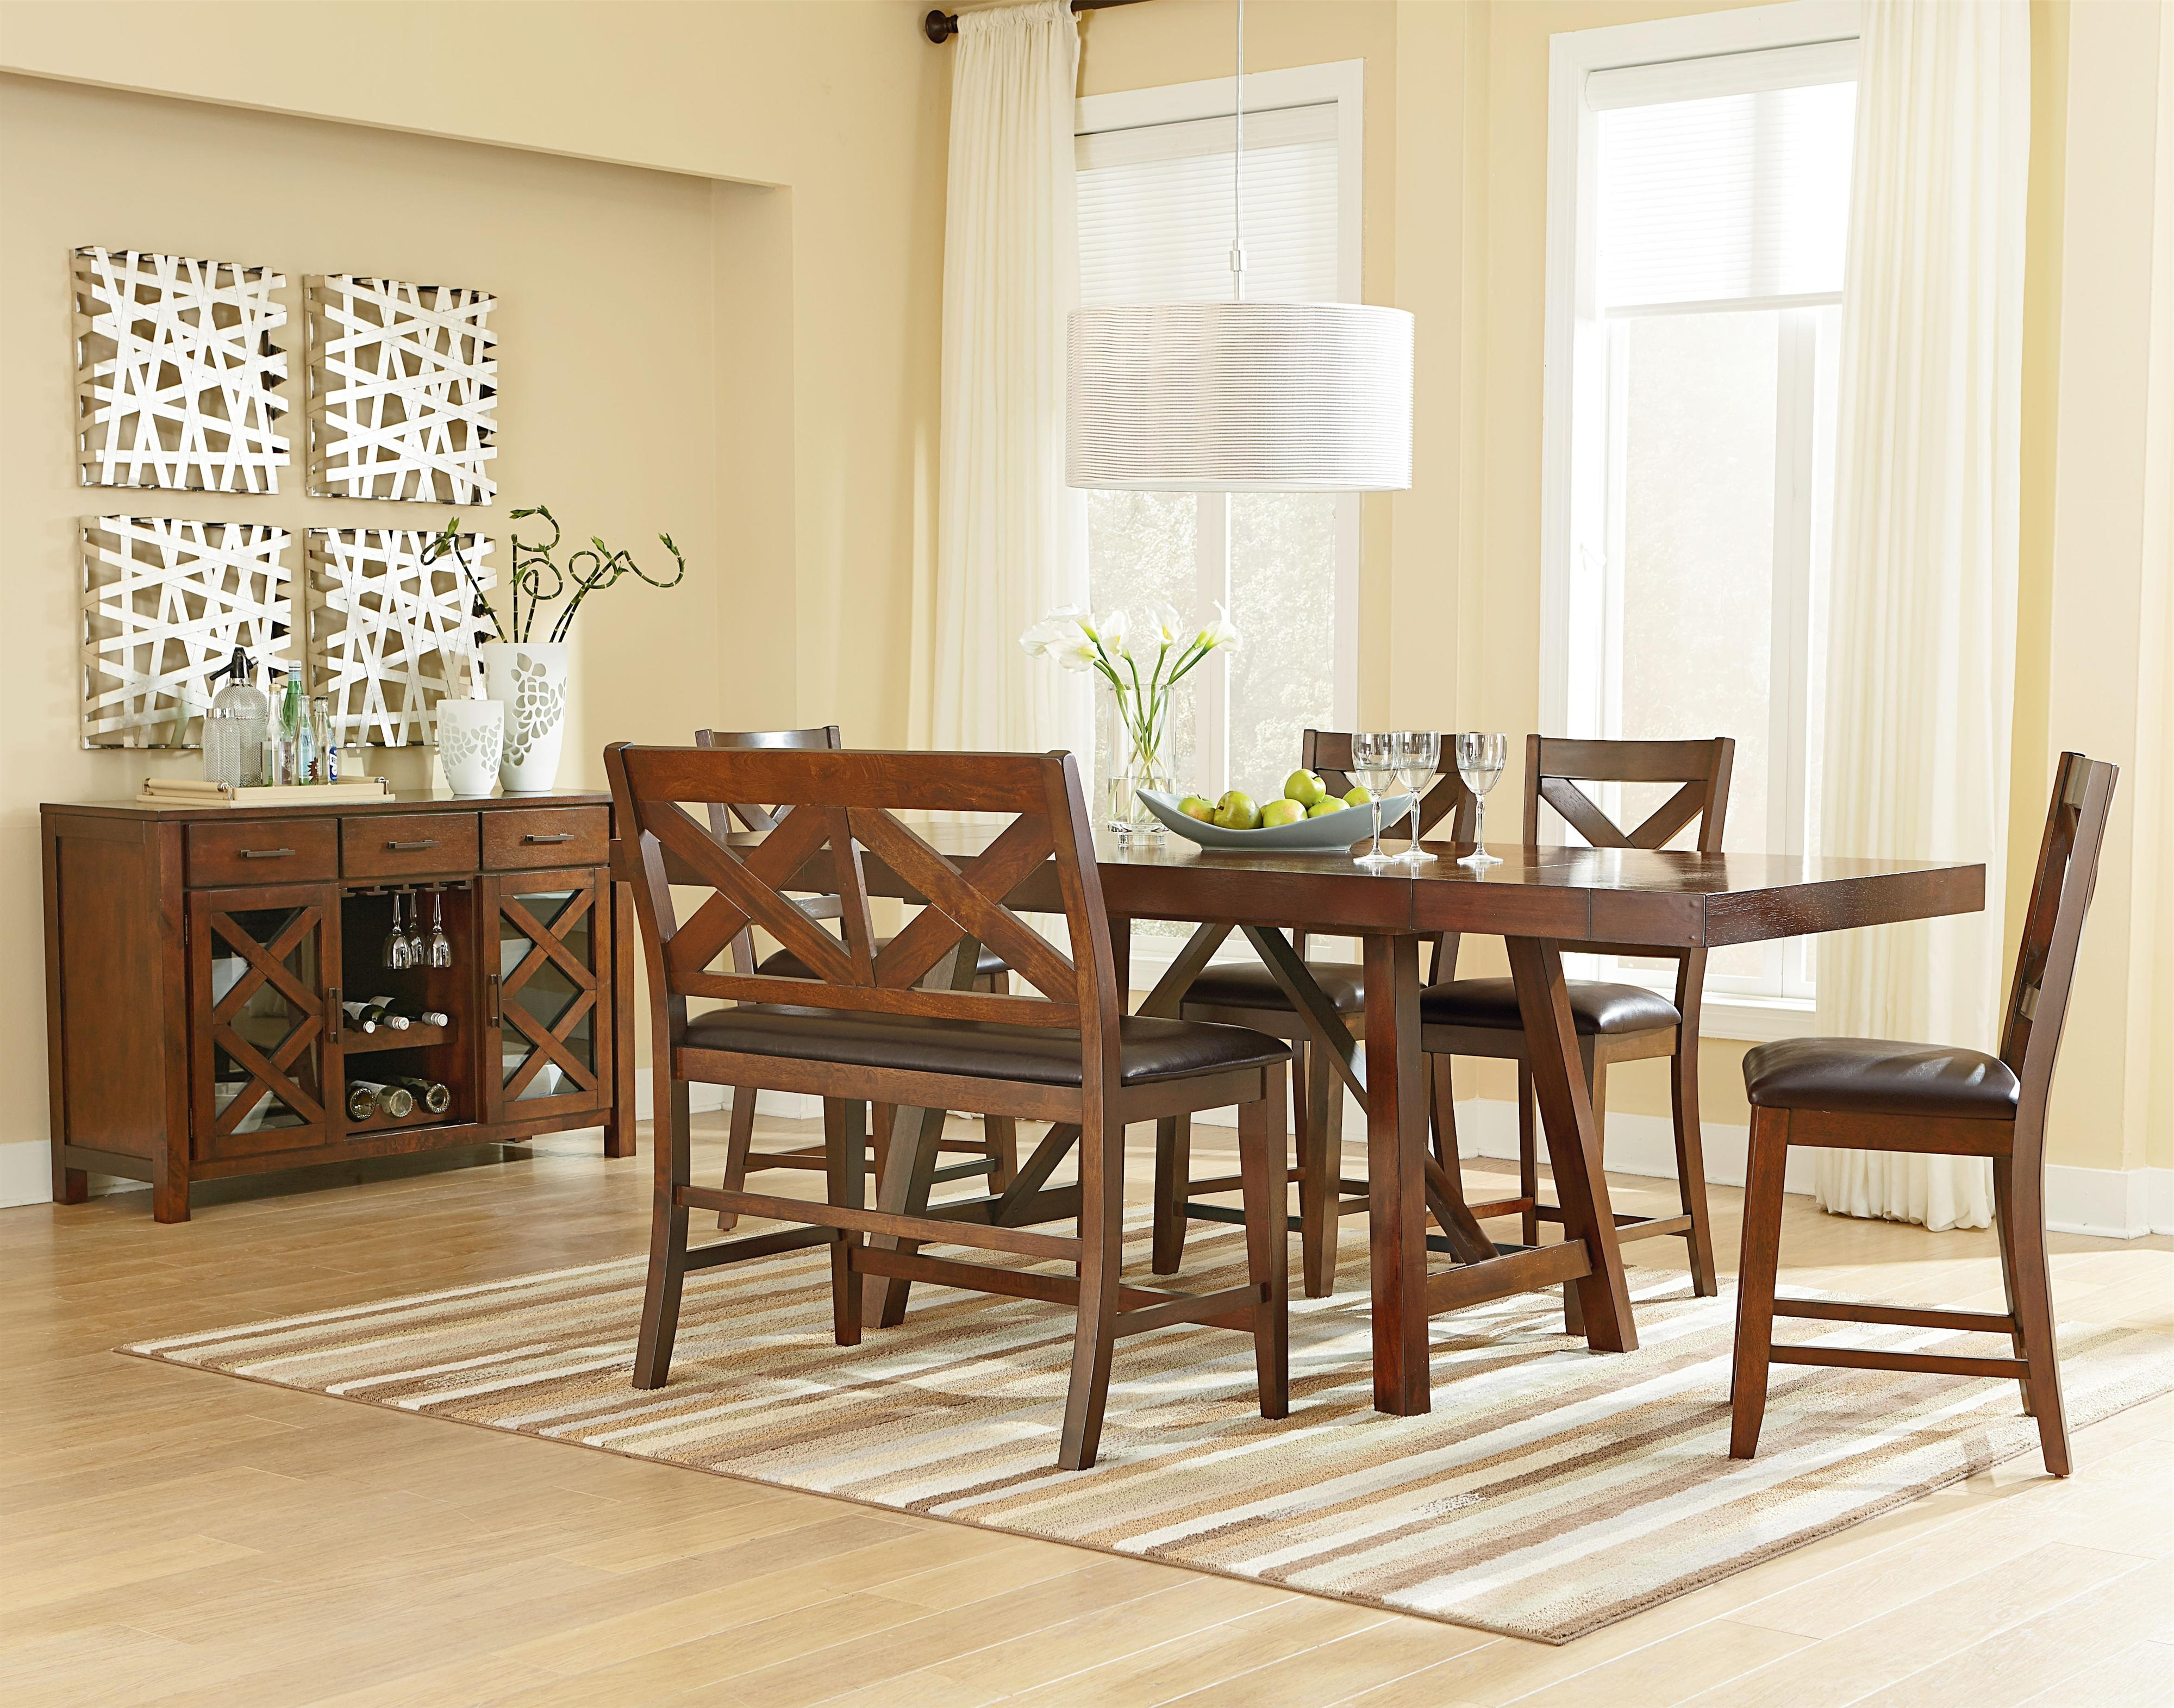 Dining Tables Bench Seat With Back inside Well-known Omaha Brown (16180)Standard Furniture - Wayside Furniture